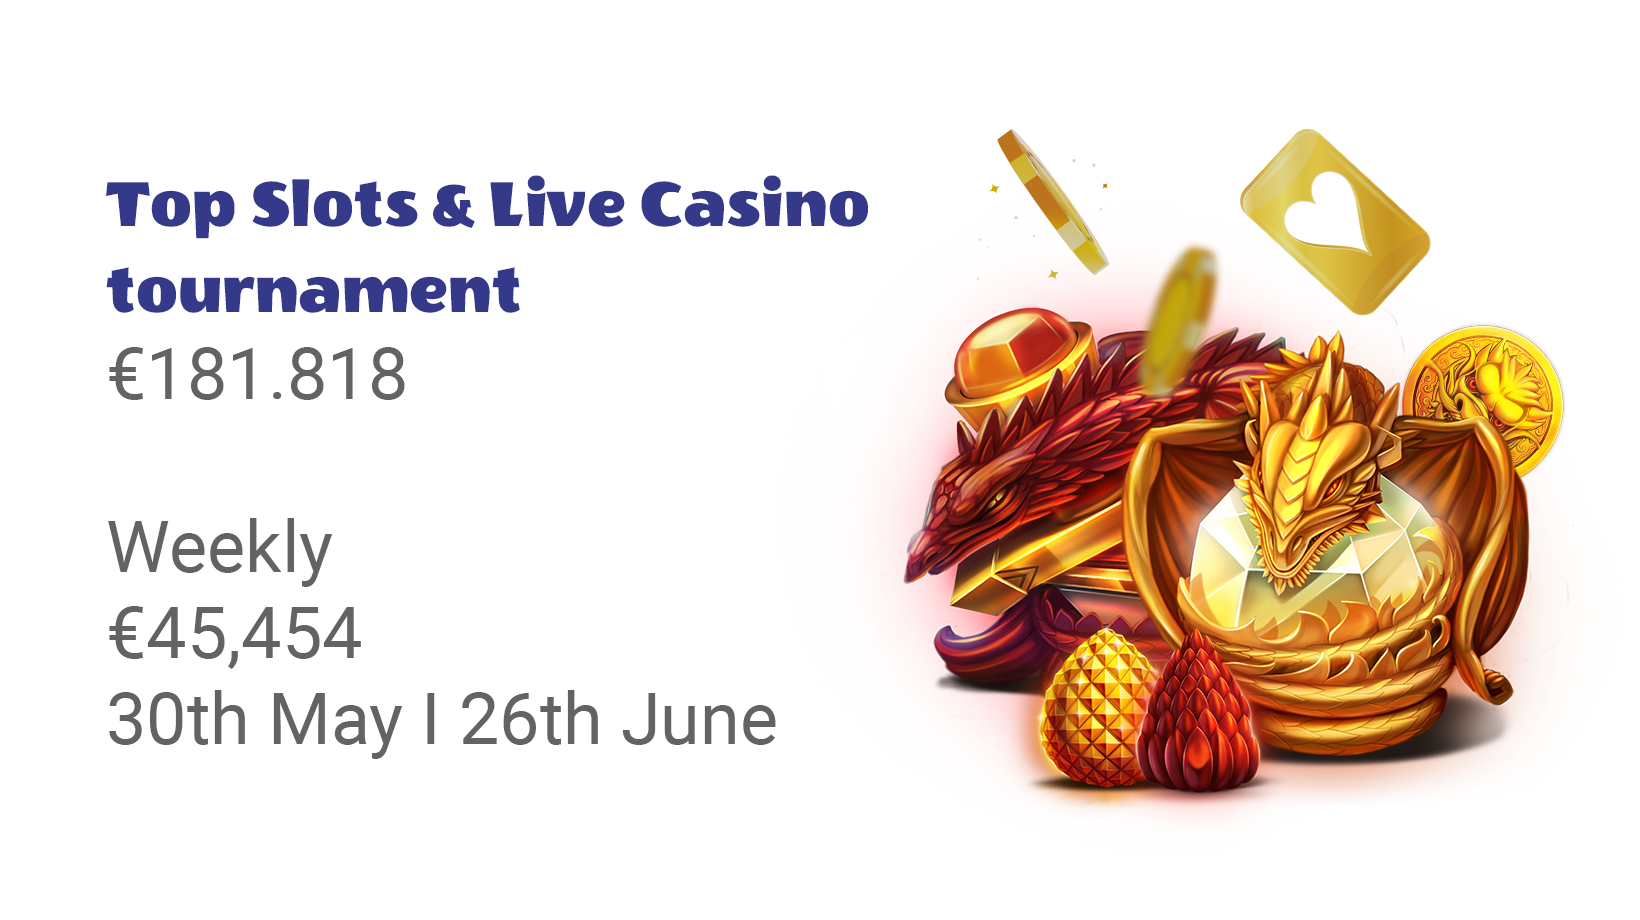 Top Slots & Live Casino Weekly Tournament